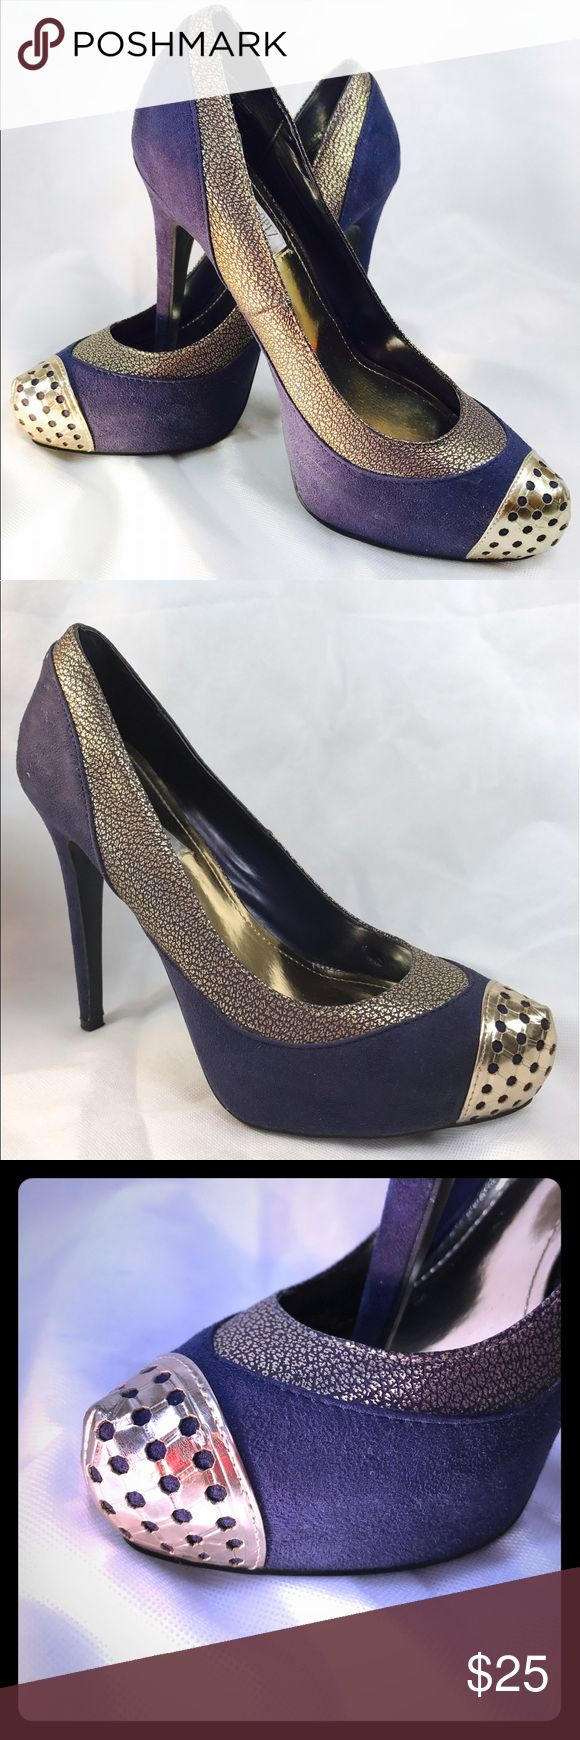 Jennifer Lopez Stylish Platforms Step out in style with these purple and gold platforms. A little worn on the right shoe. Picture included. Jennifer Lopez Shoes Platforms